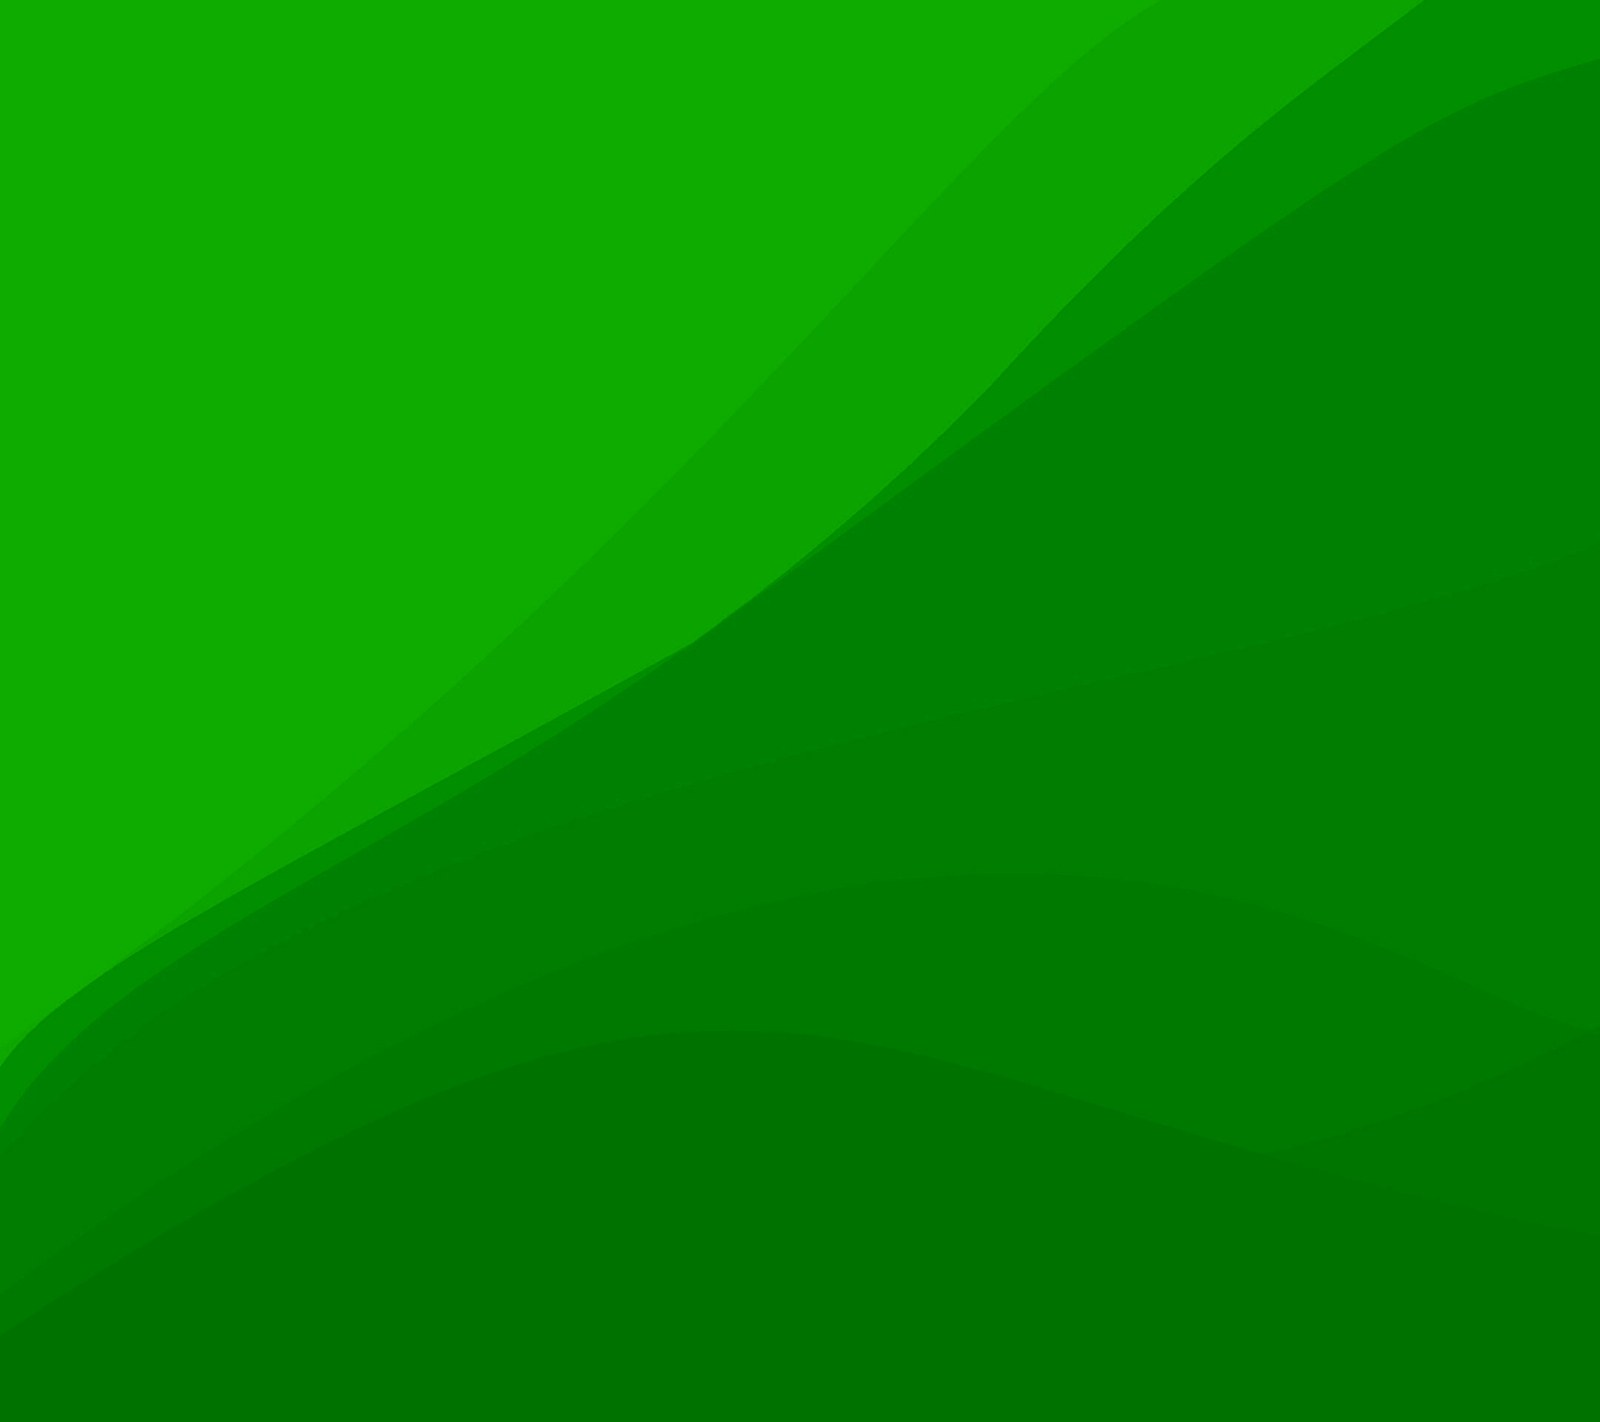 Xperia Green Lollipop Wallpaper